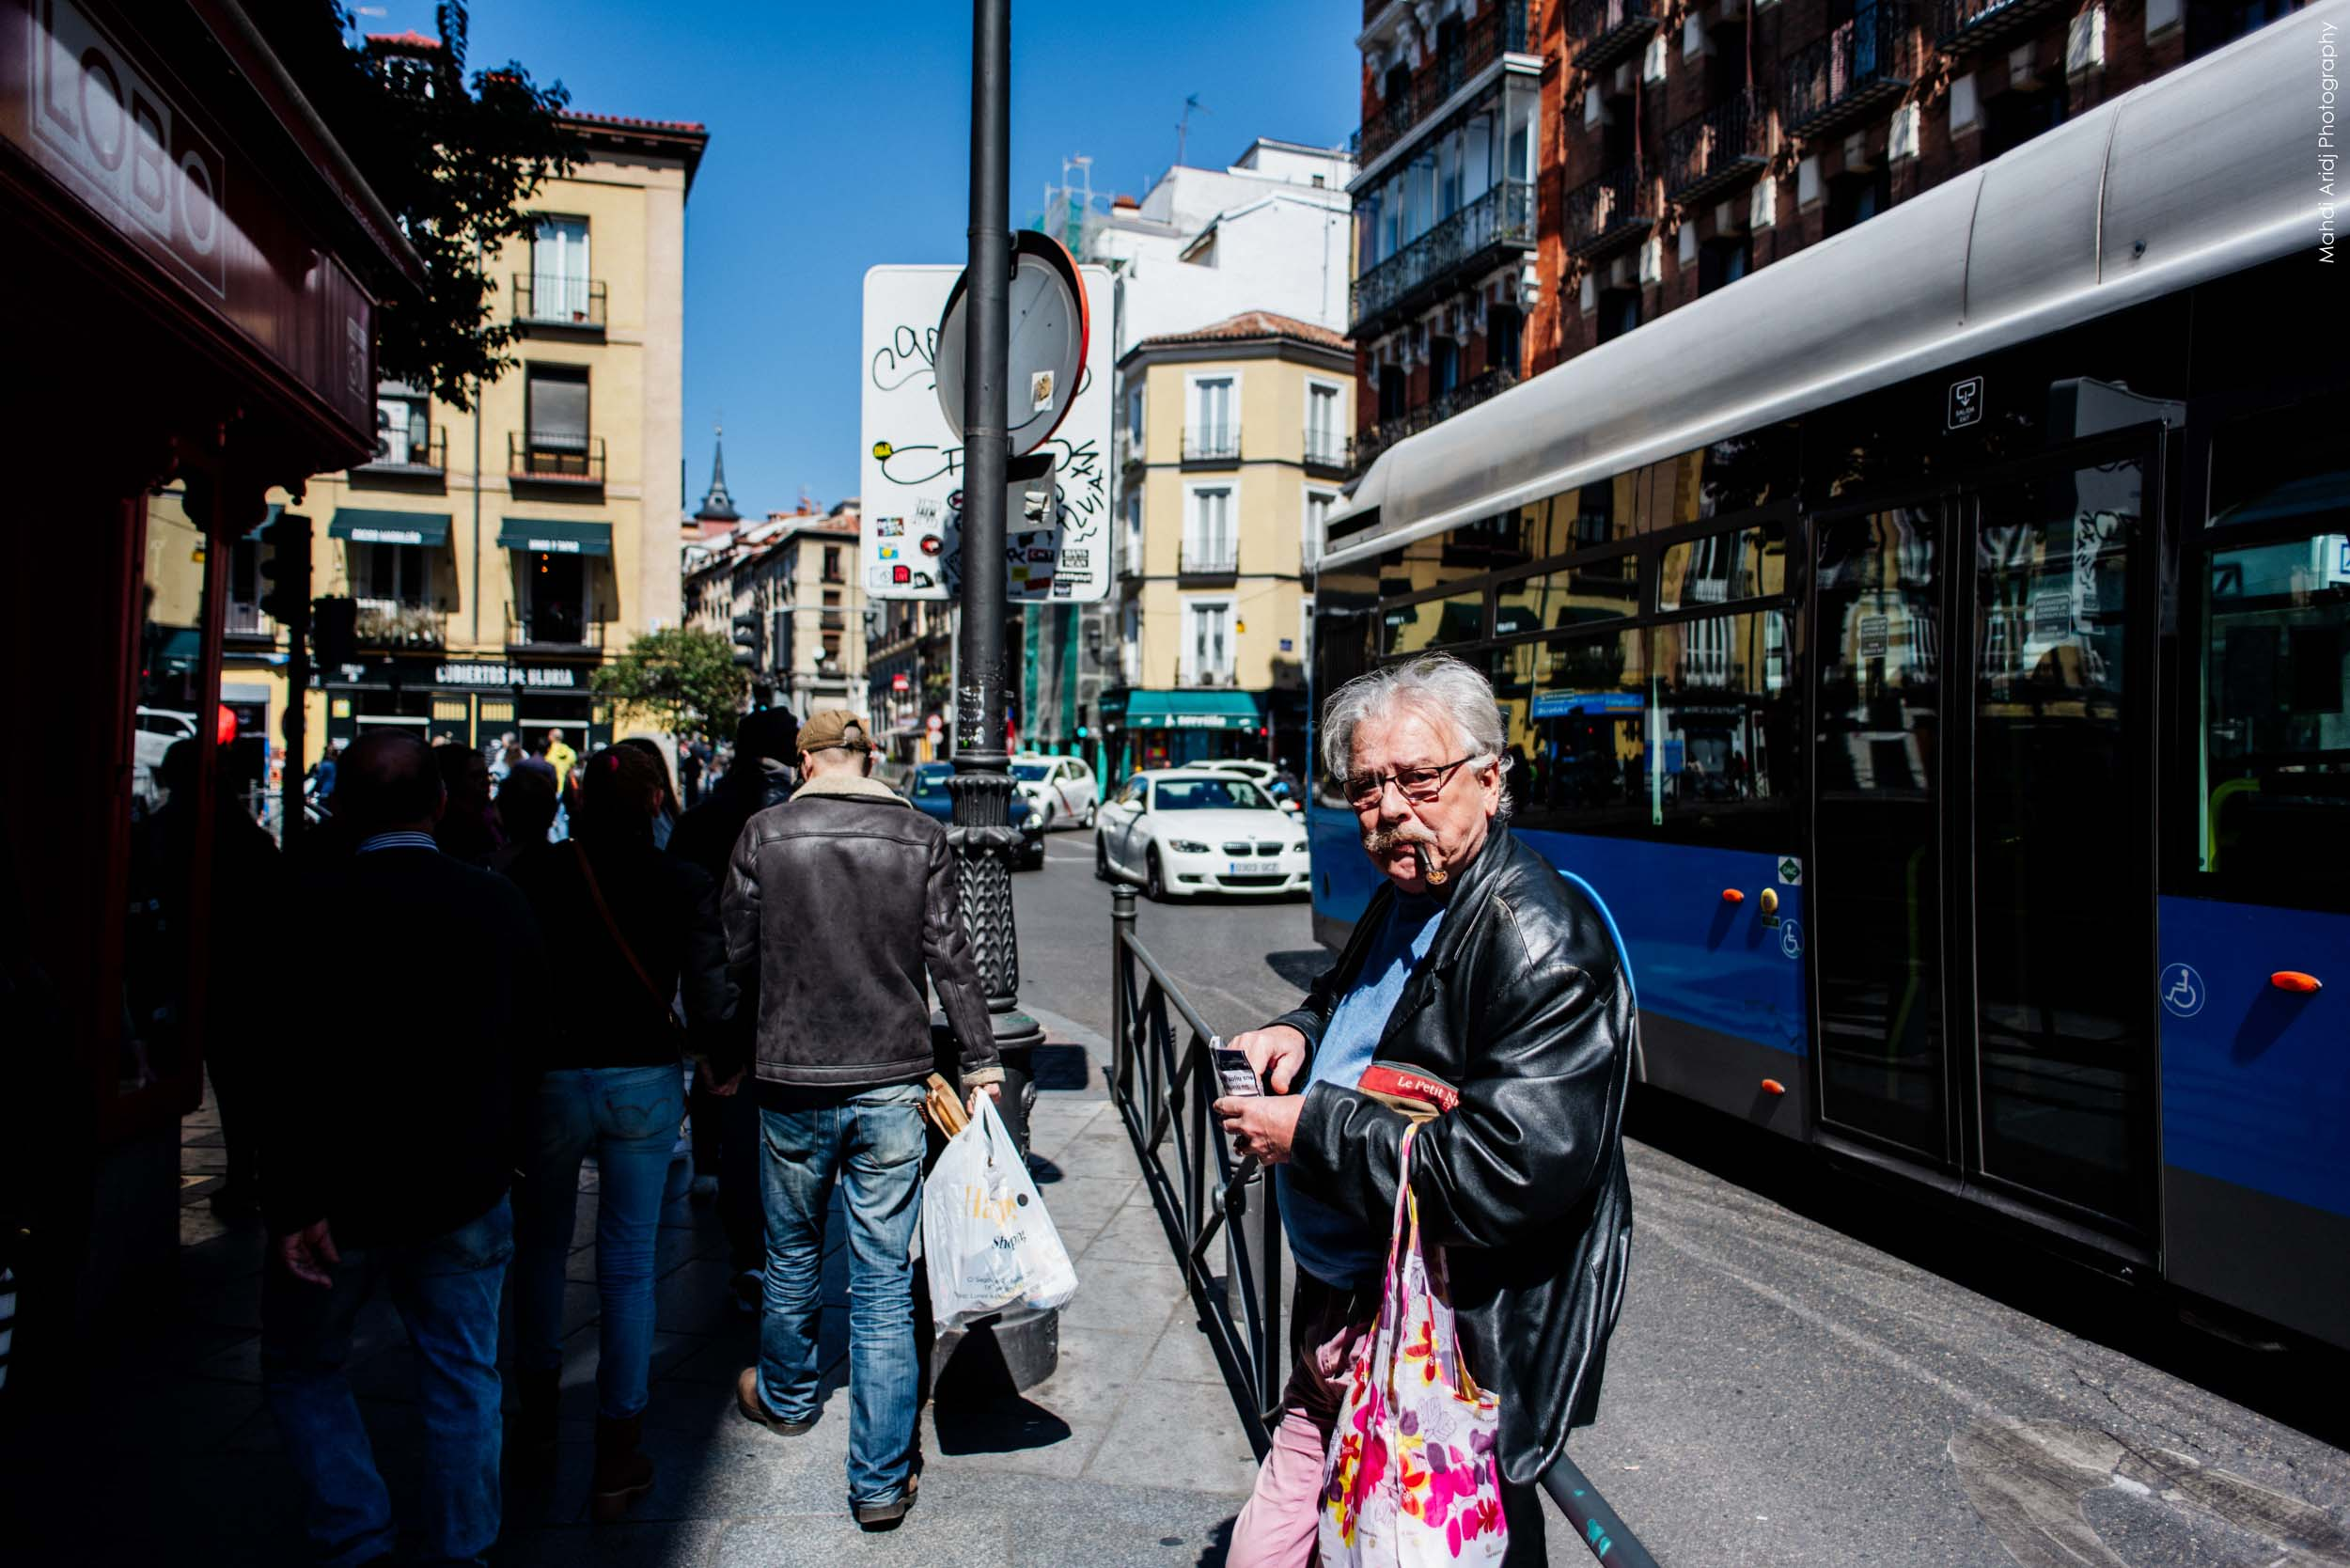 Street Photography in Madrid - Photographie de rue à Madrid